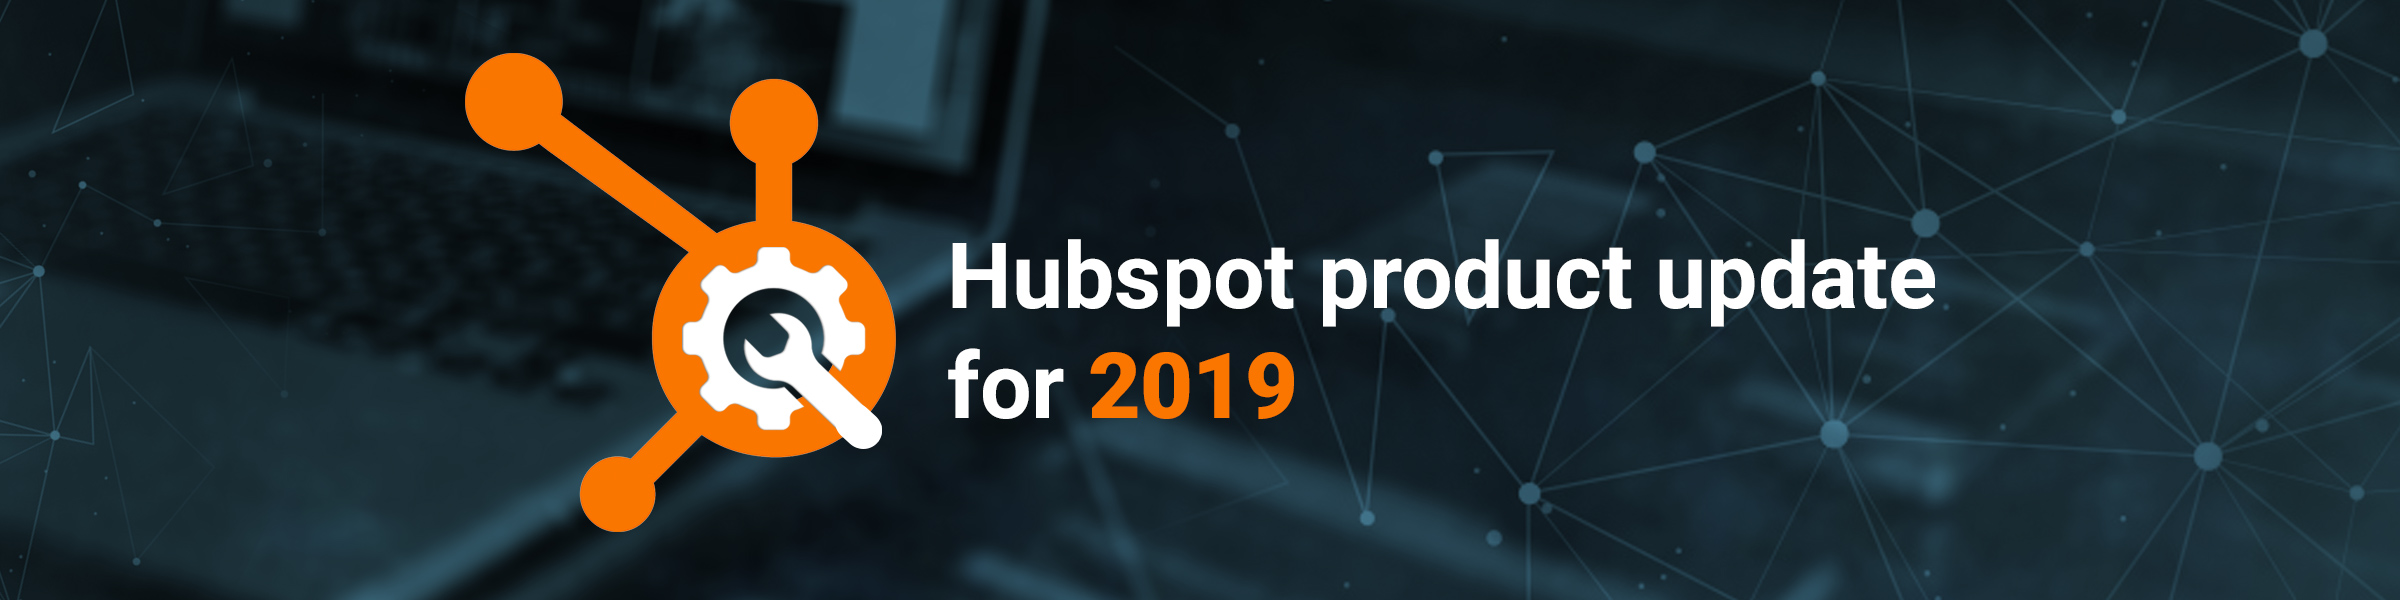 Hubspot product update for 2019